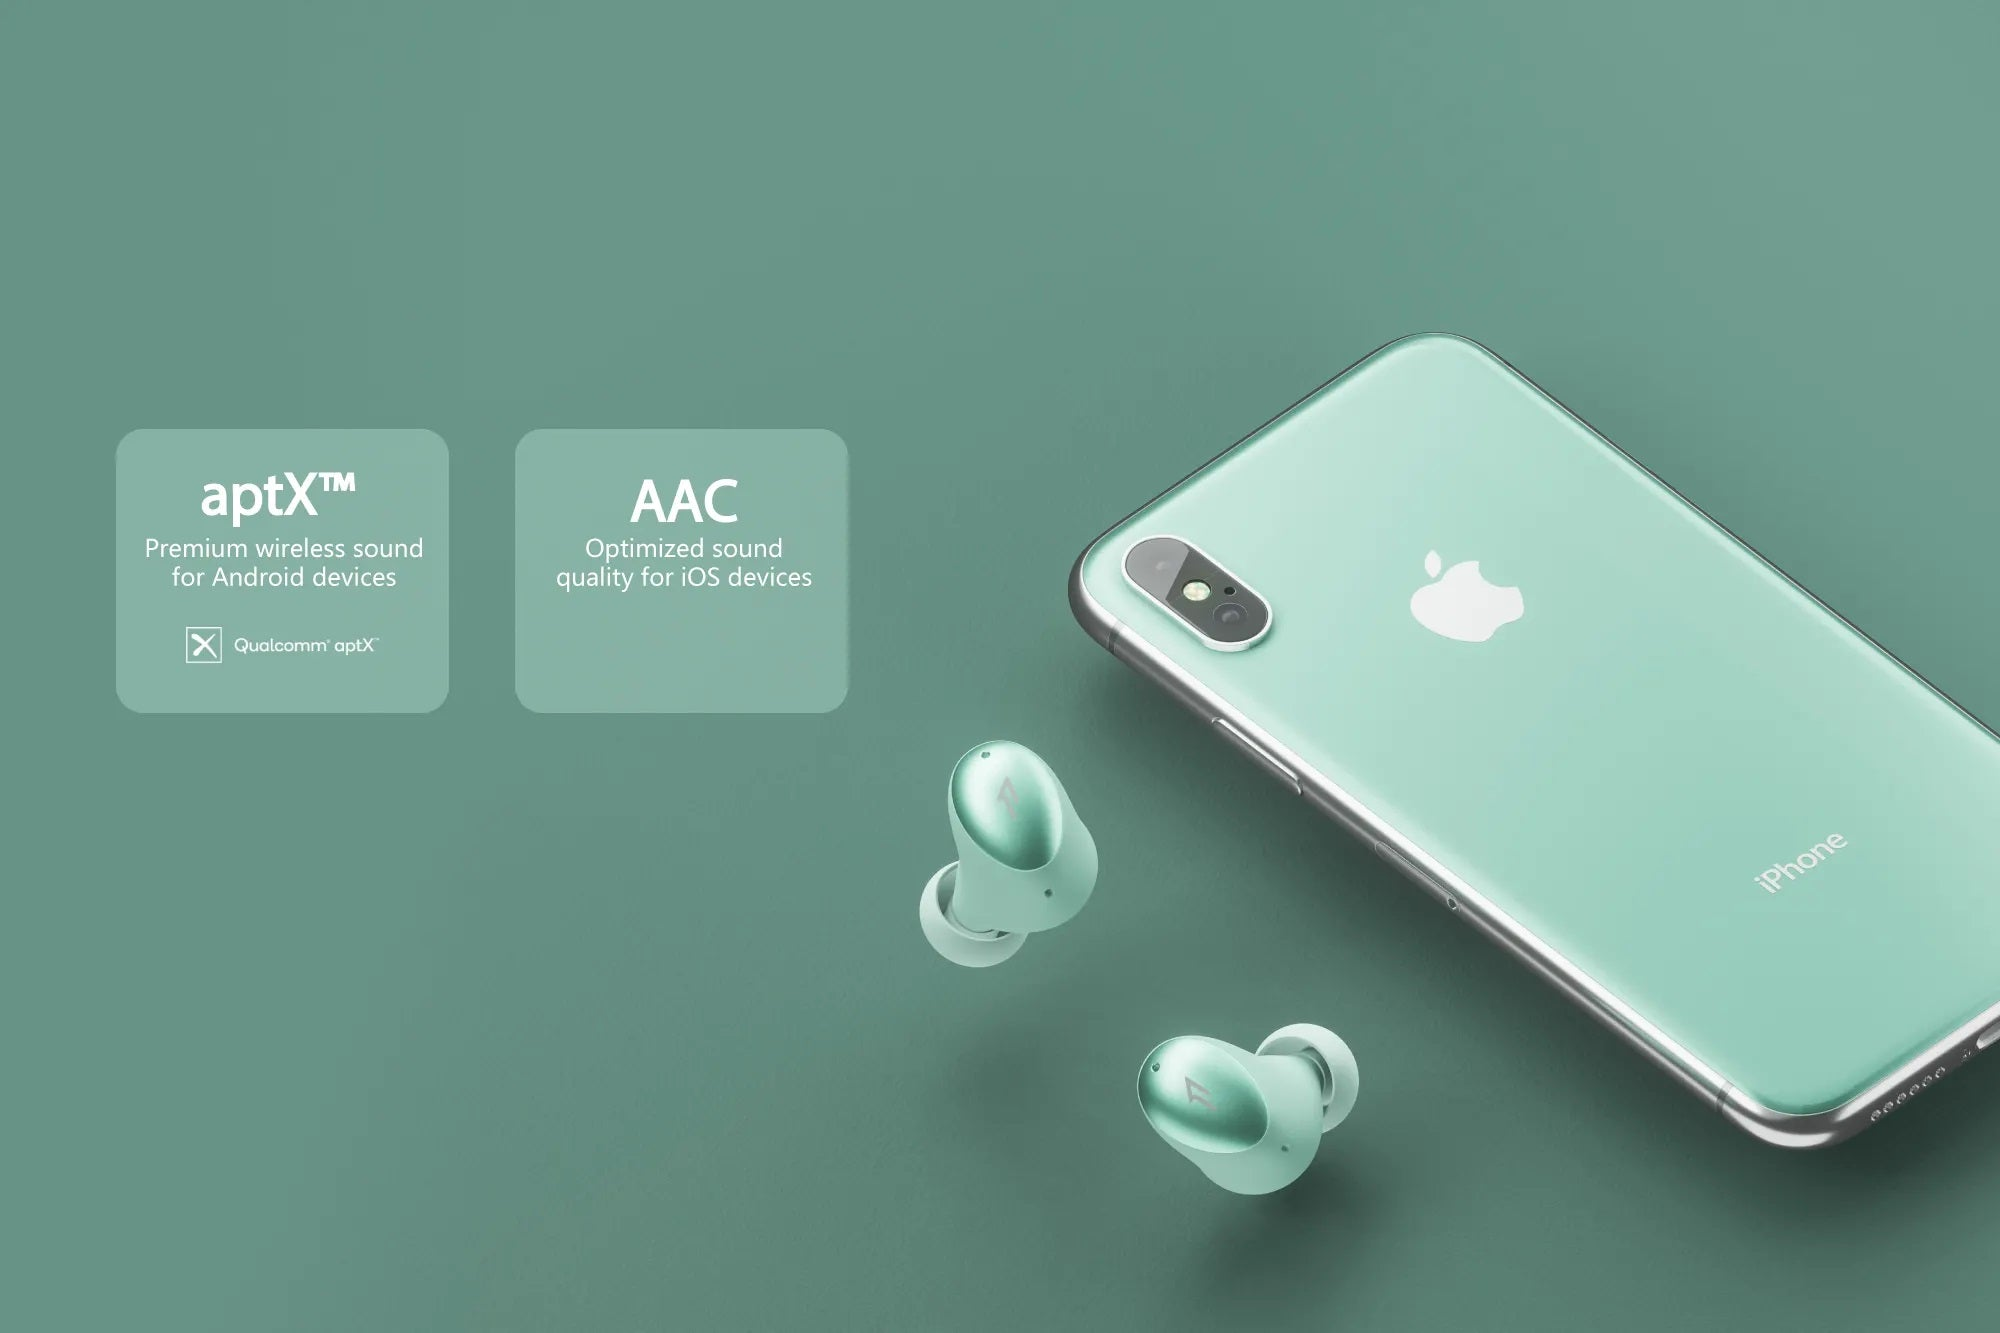 ANDROID & iOS COMPATIBLE - Enjoy superior sounding audio with aptX™ and AAC codecs to ensure you are getting the best possible sound on virtually any device.